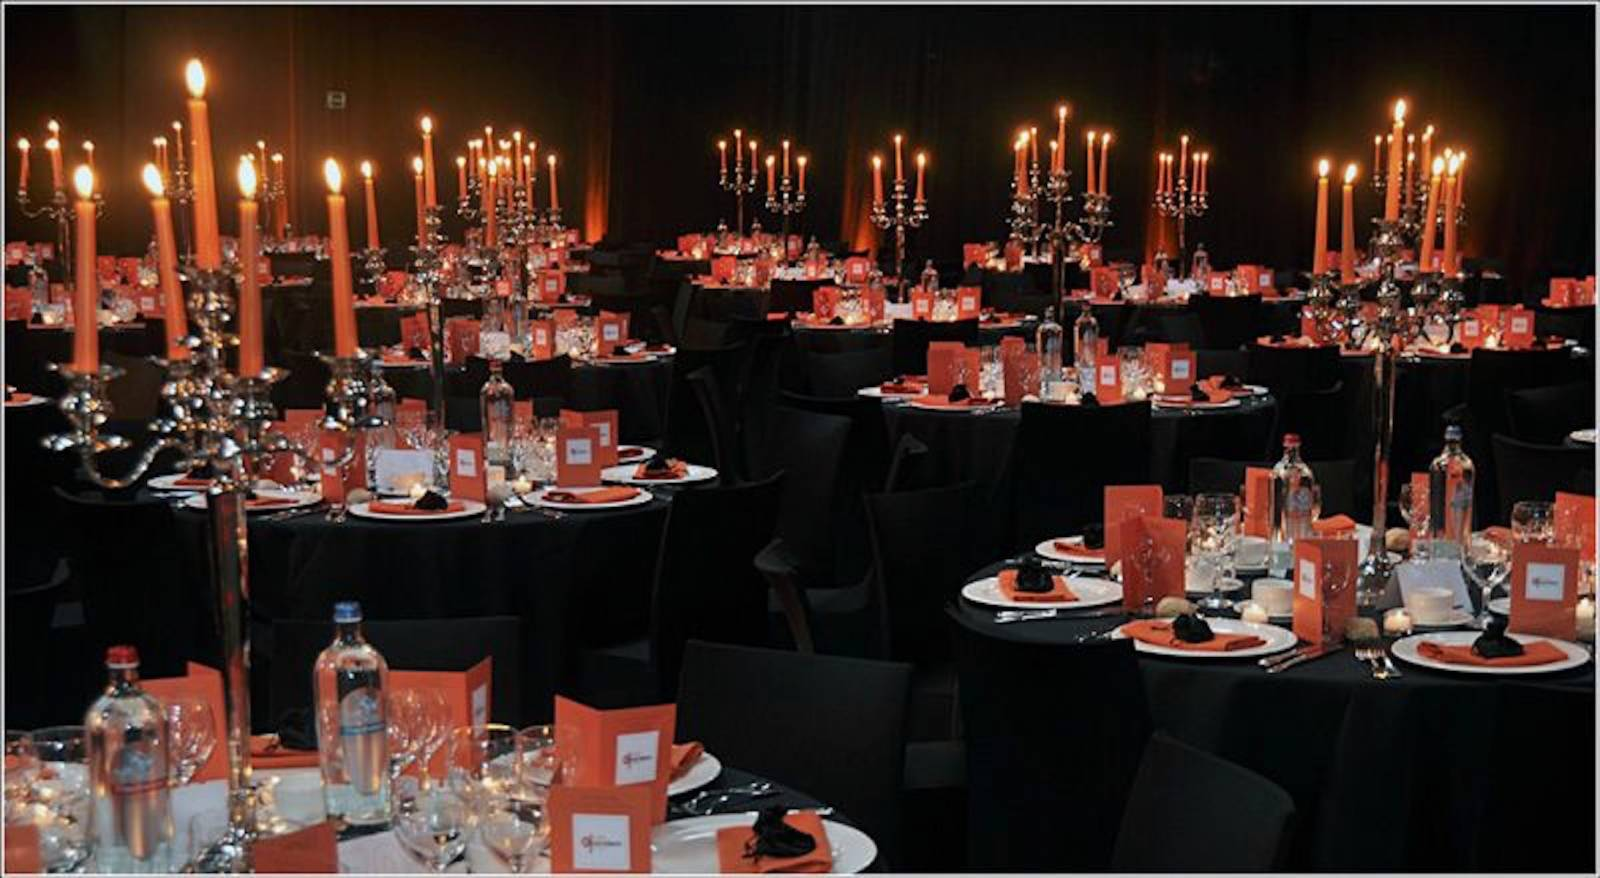 Cardinal Catering - Catering Event - Traiteur - Cateraar - House of Events - 5